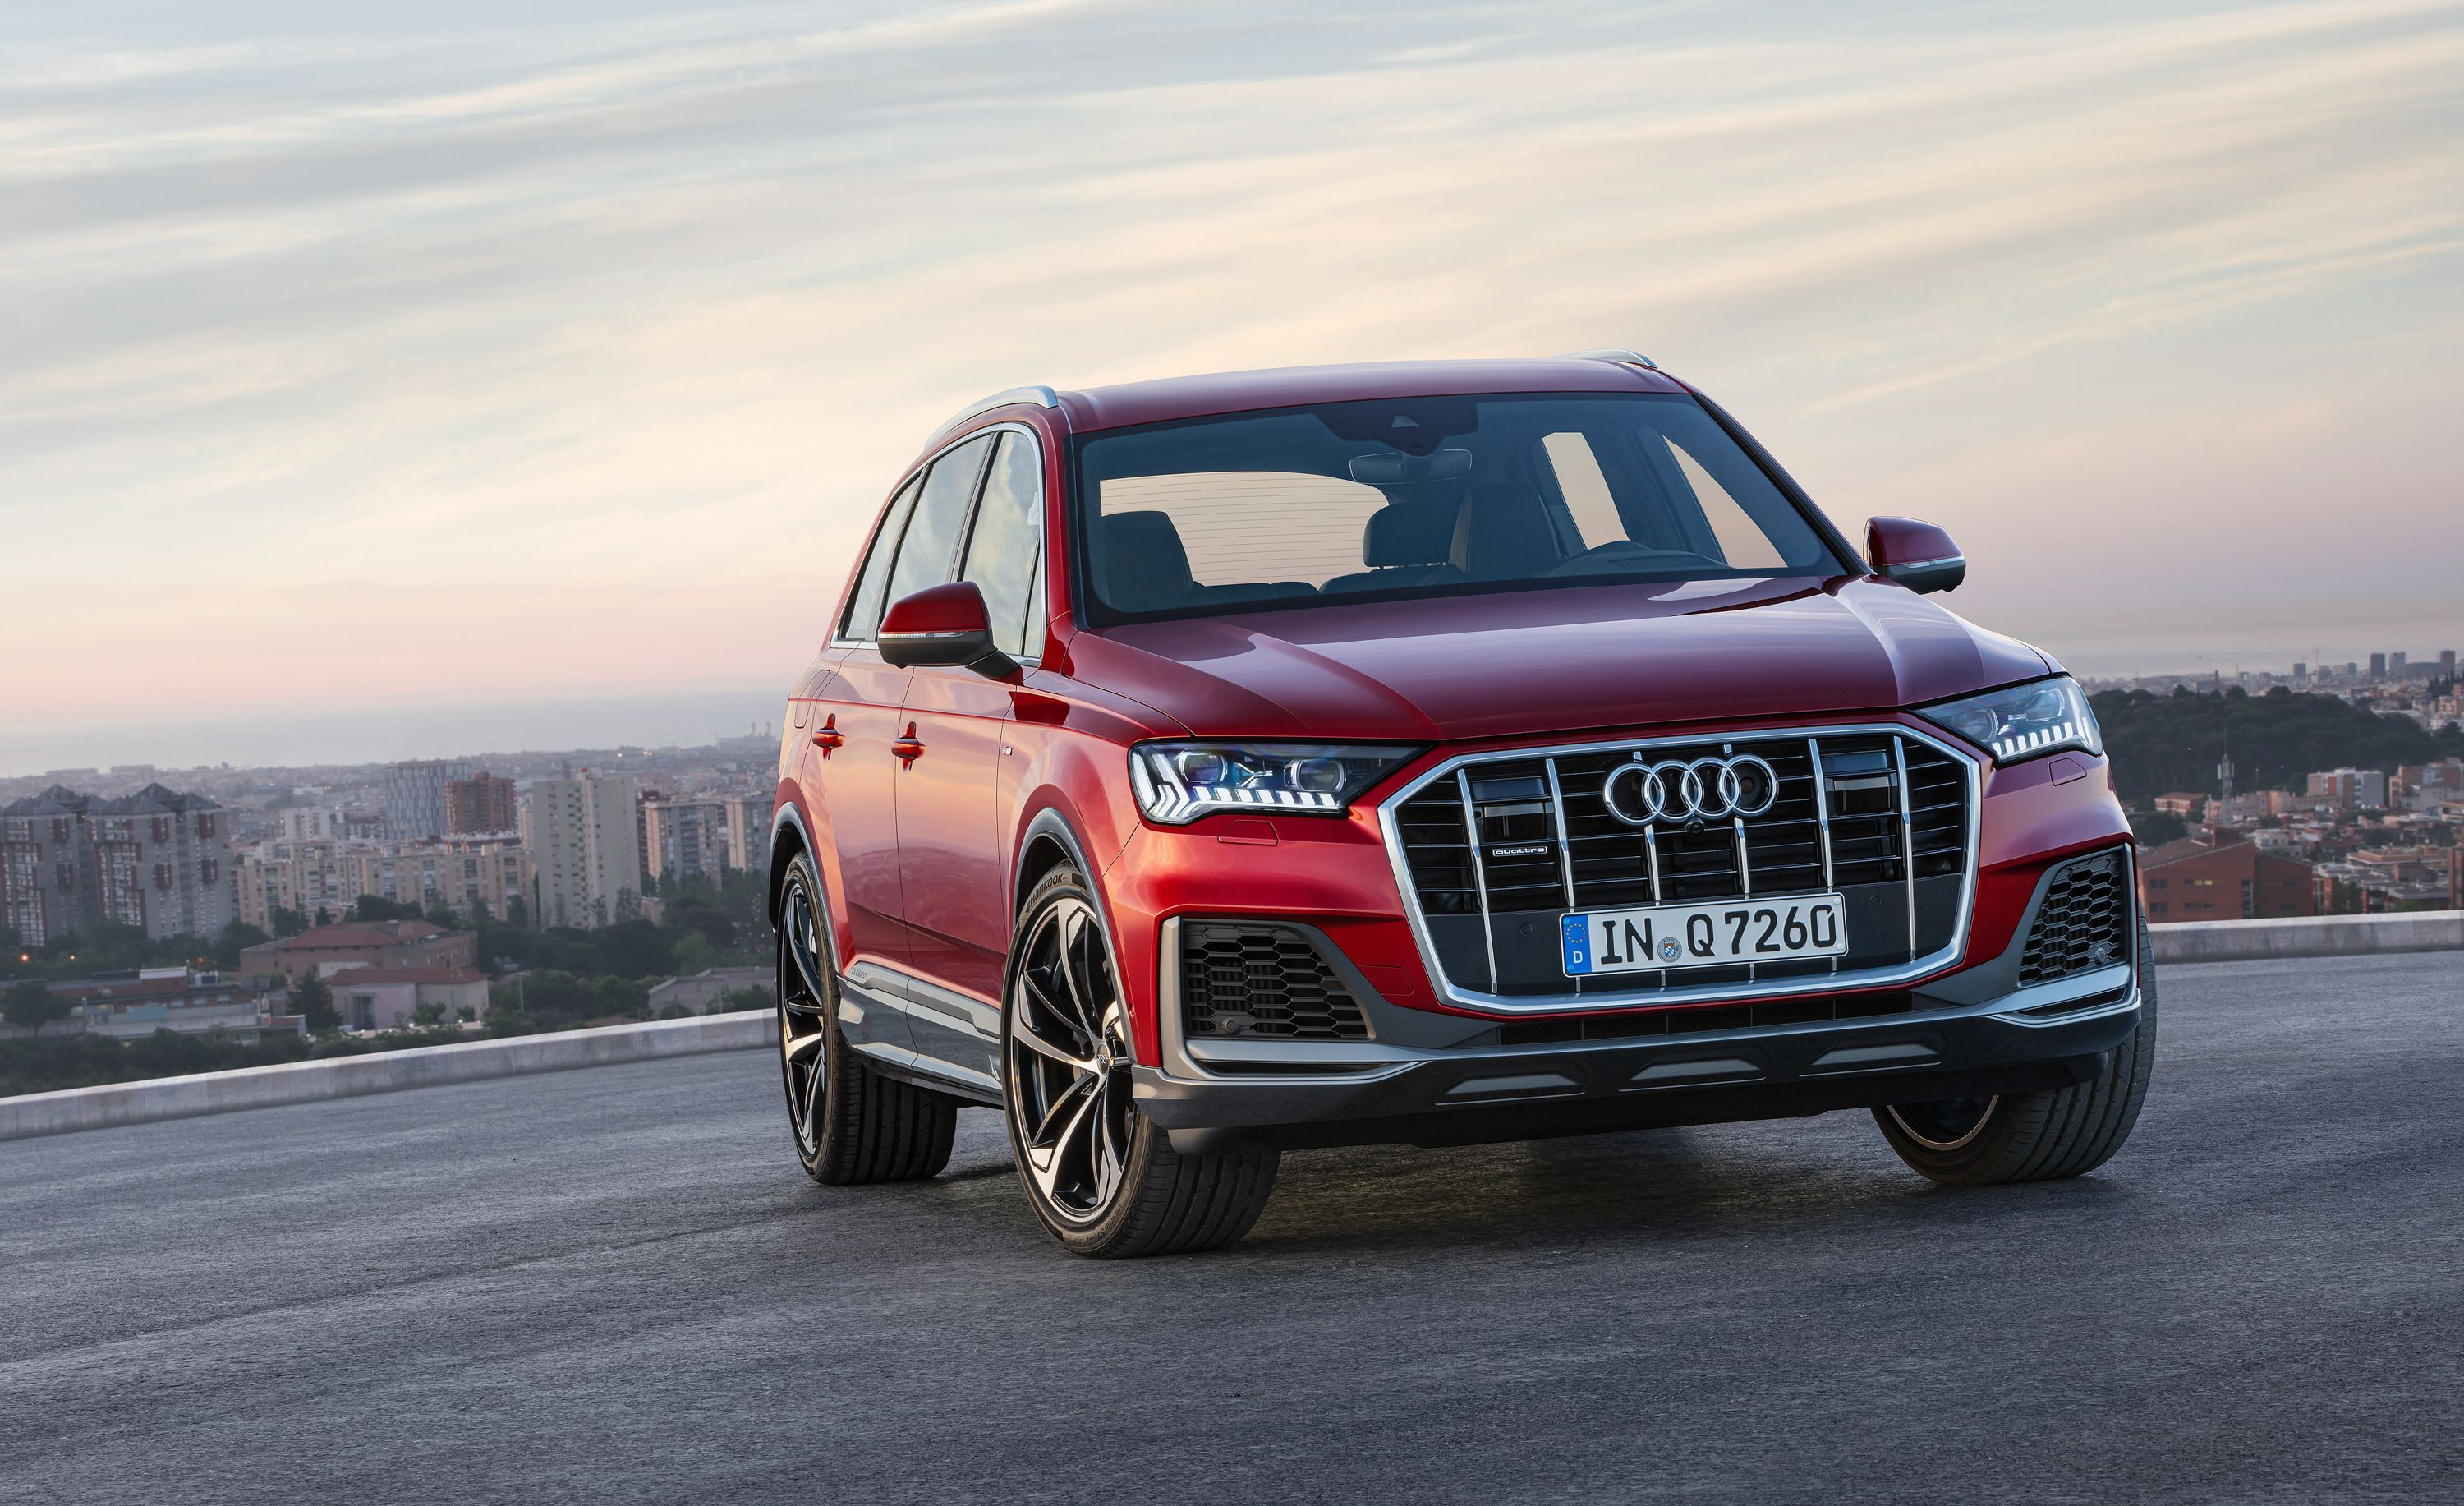 The 2020 Audi Q7 Gets A More Stately Look And Tons Of Touchscreens Audi Q7 Audi Audi Q7 Price